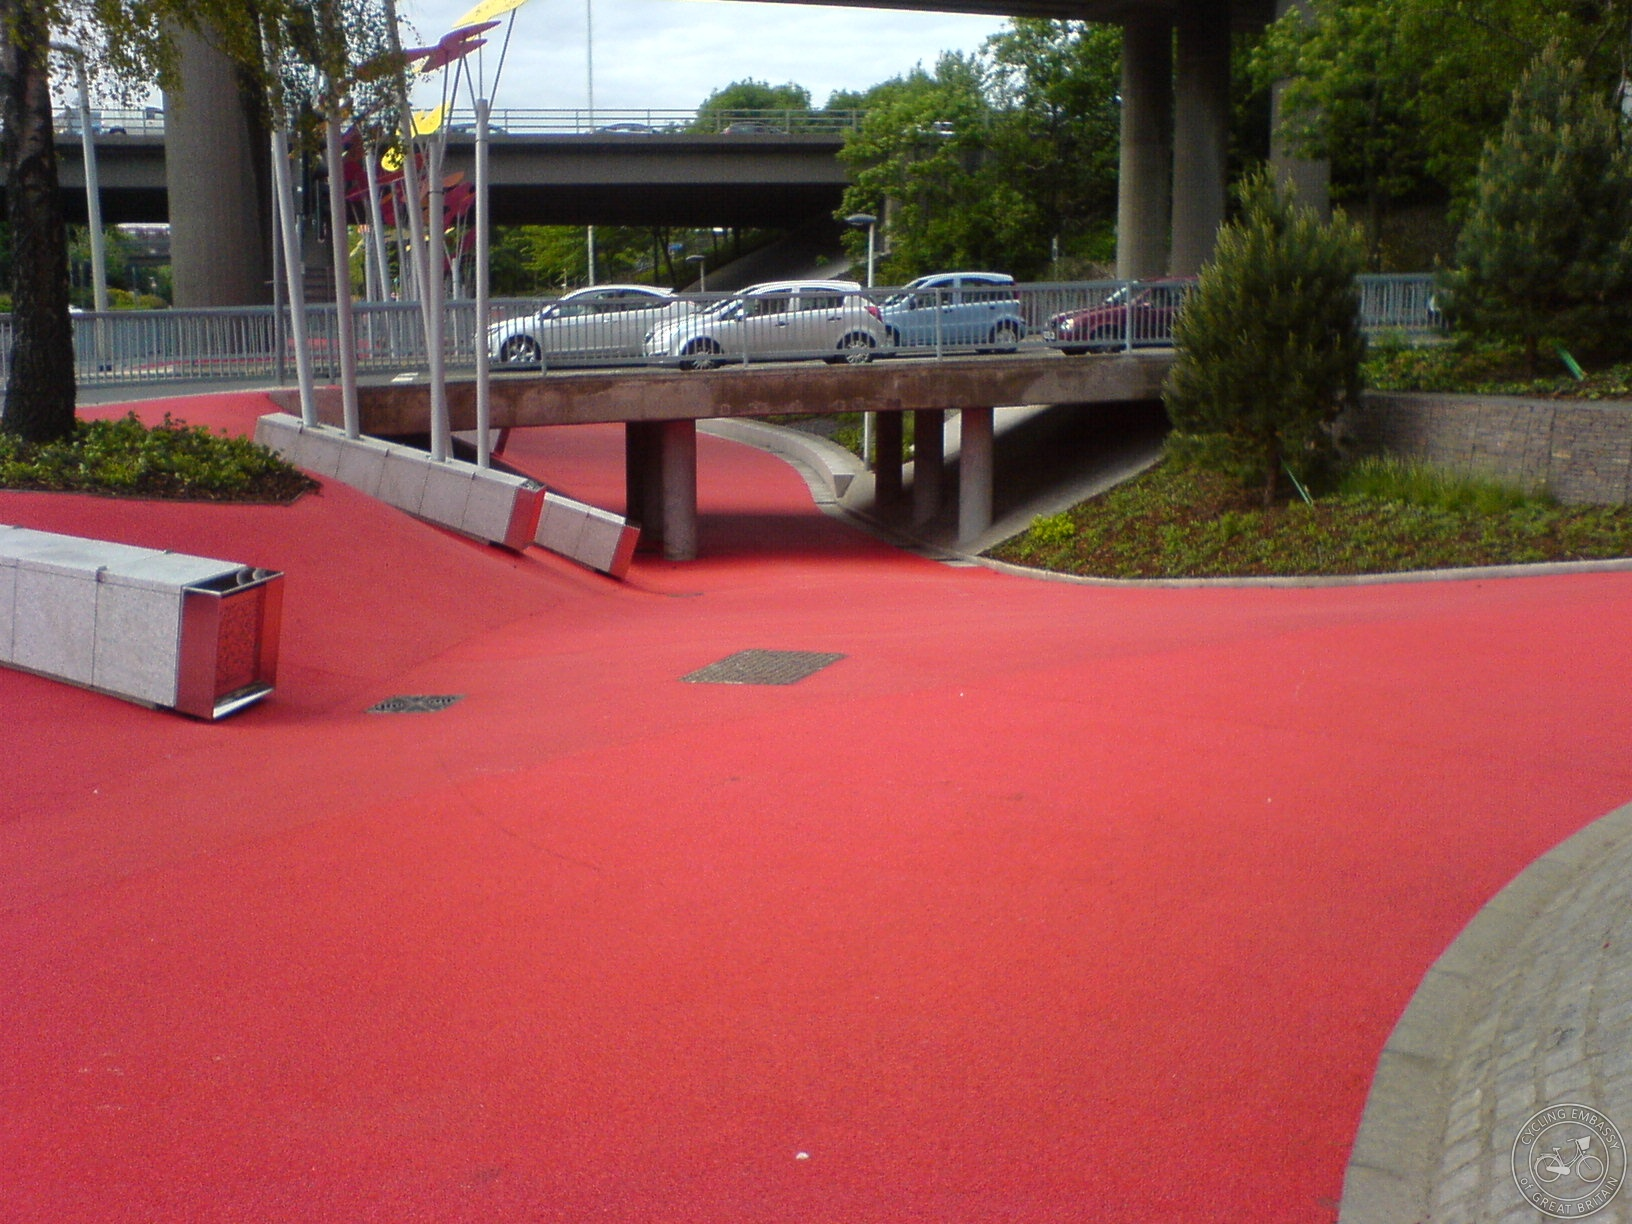 Garscube underpass on Cycle Streets